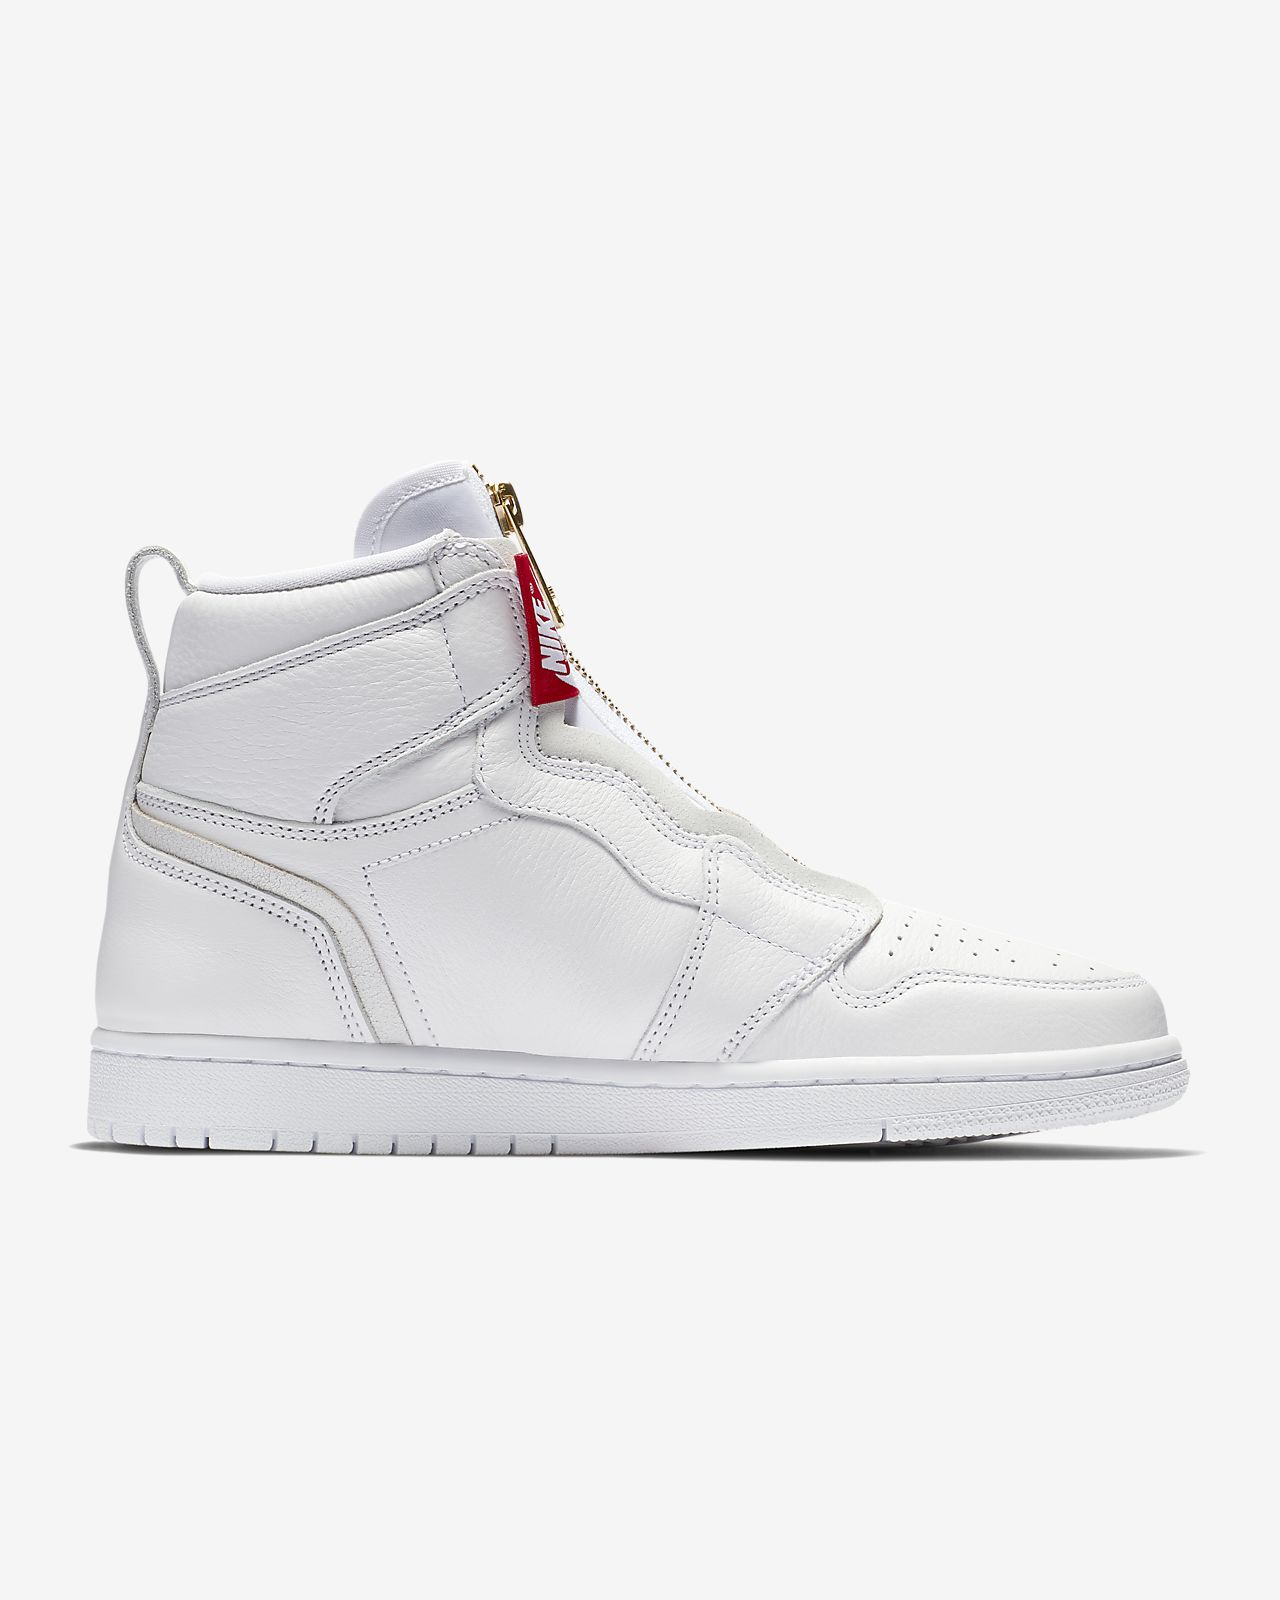 innovative design 40ca0 add05 ... Air Jordan 1 High Zip Women s Shoe